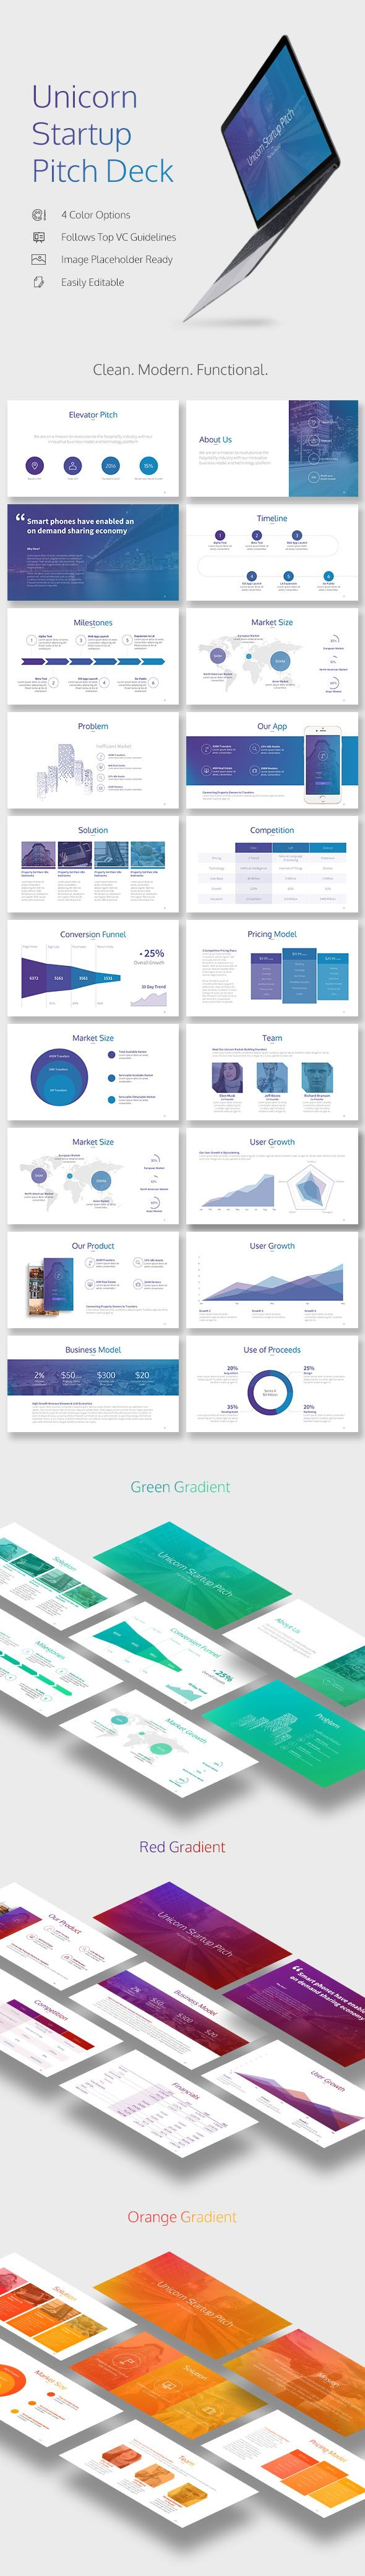 Best StartUp Pitch Decks Images On Pinterest Pitch Startups - Awesome free pitch deck template scheme